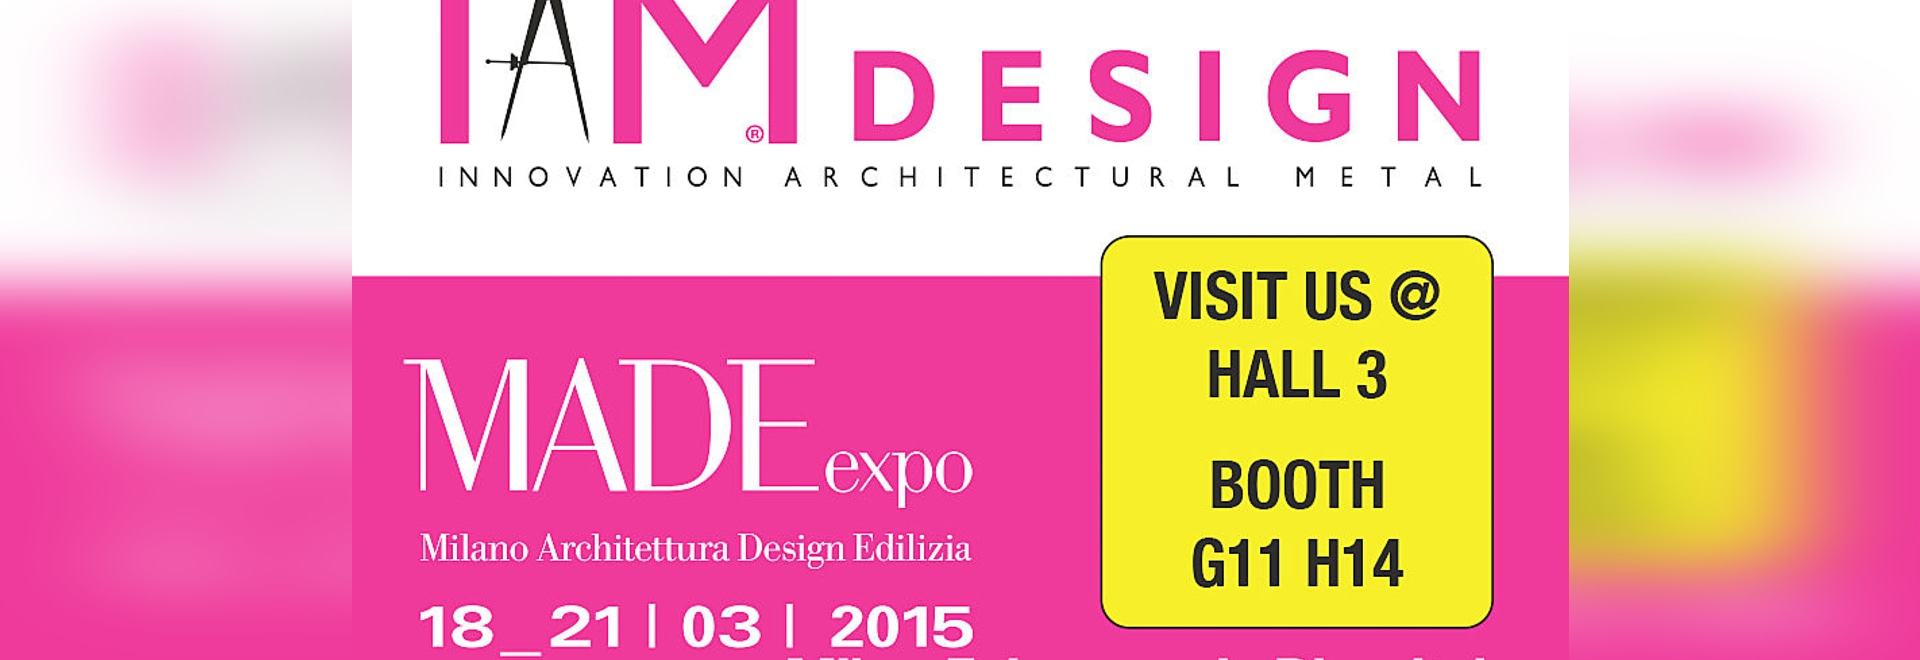 IAM Design confirms its presence at MADE expo 2015